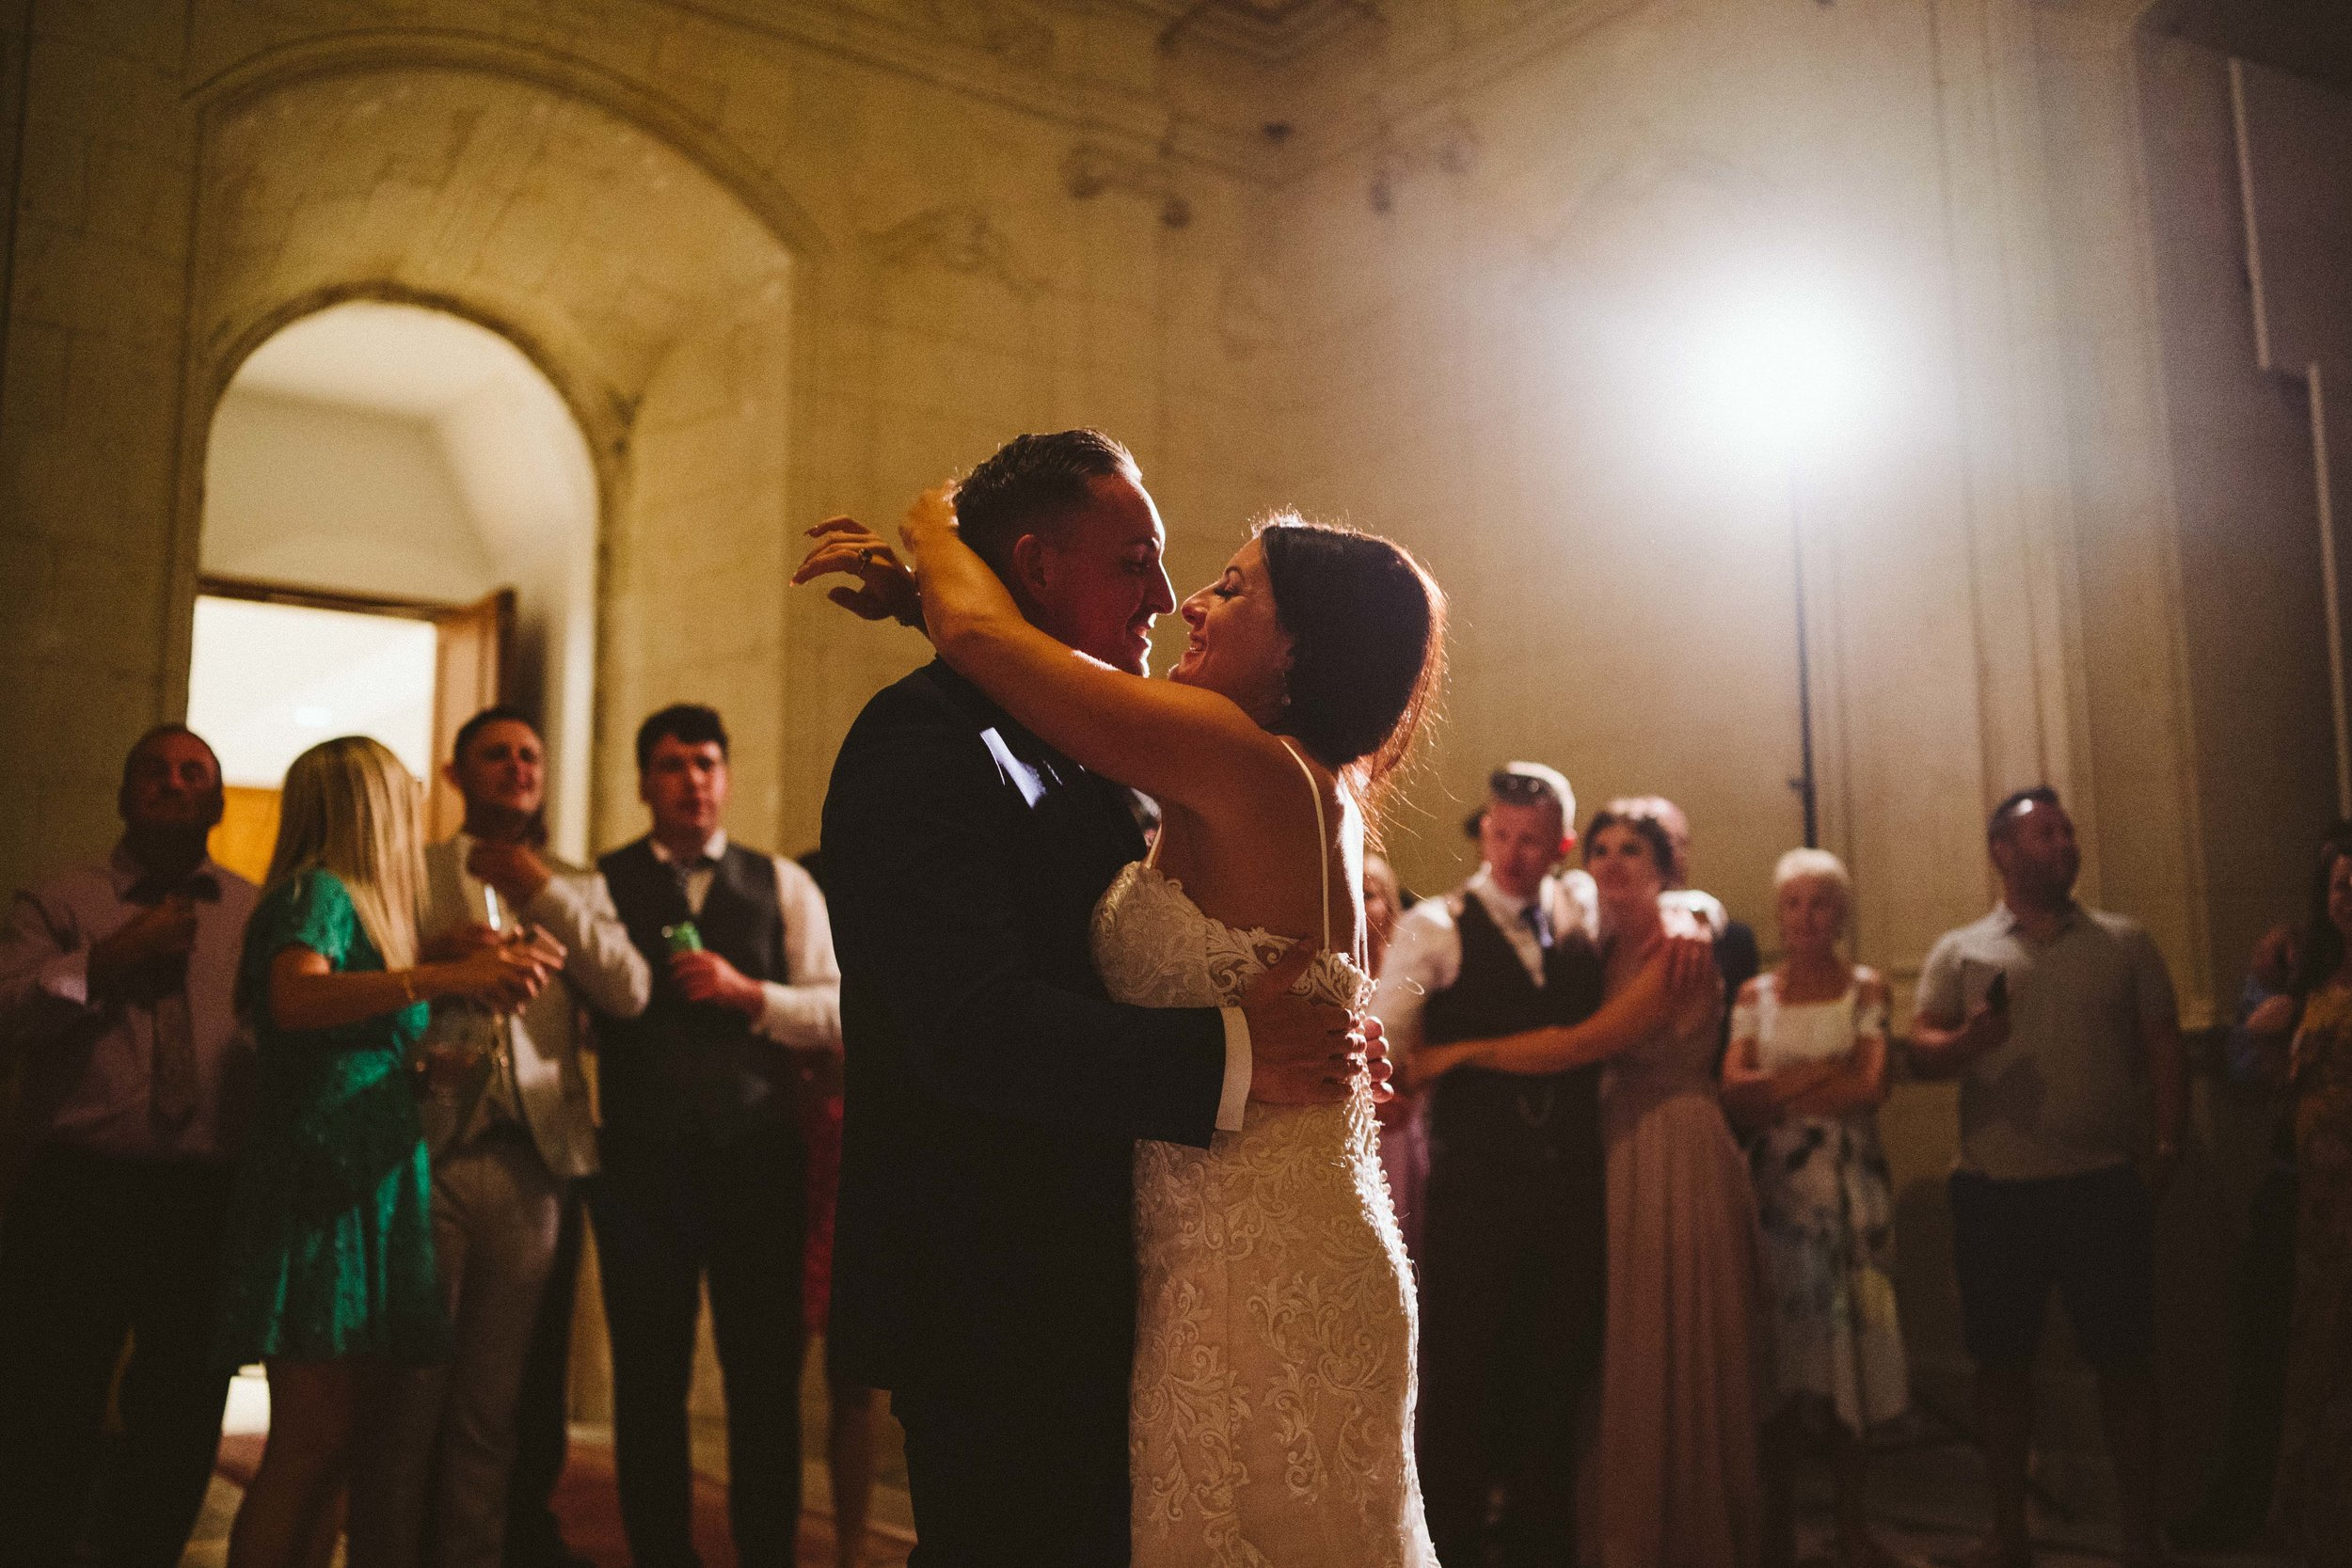 First dance at Chaeau de Jalesnes